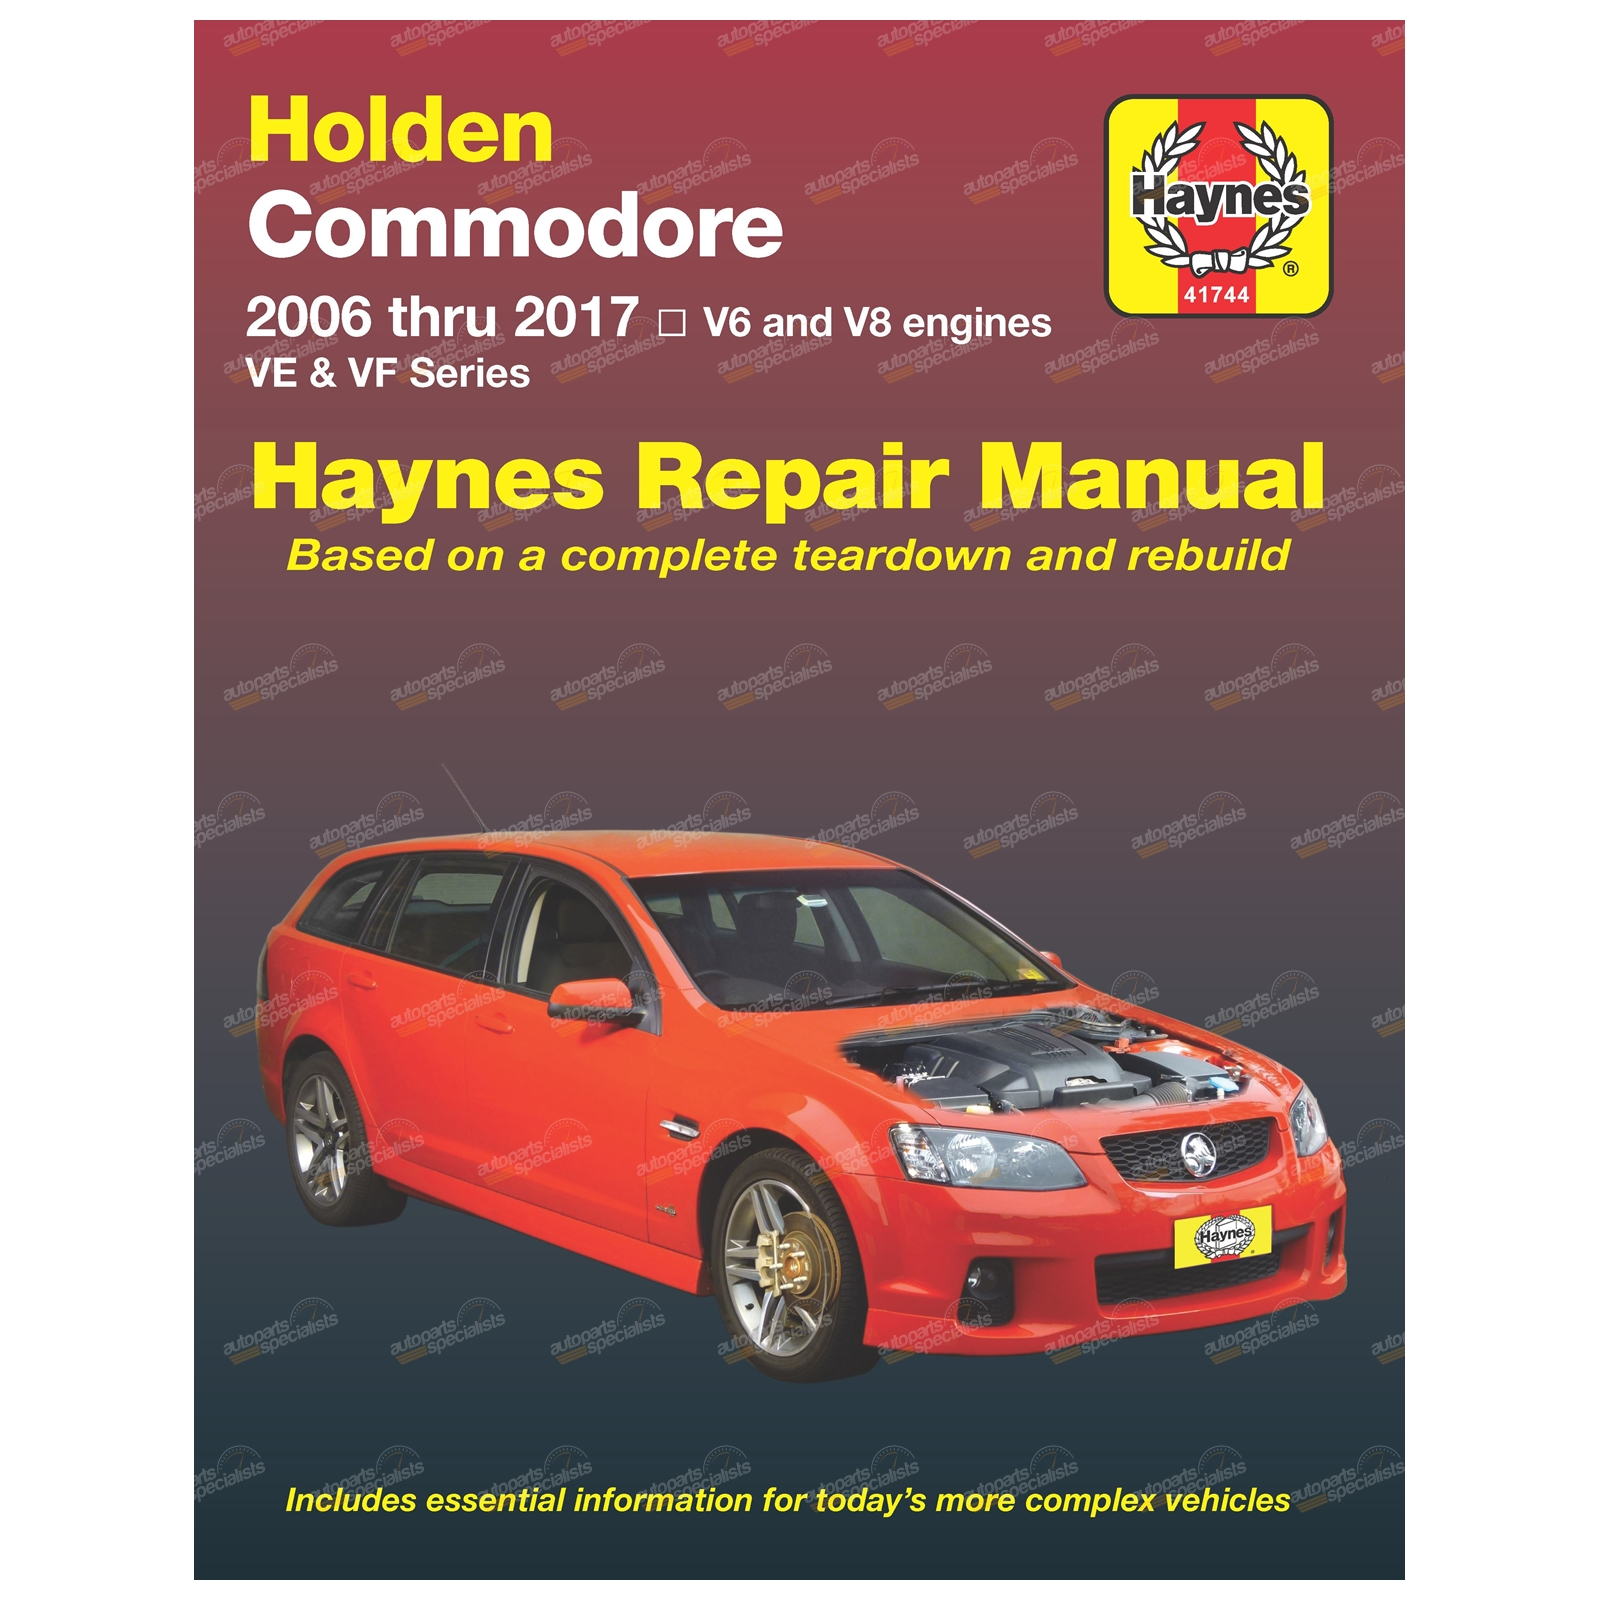 Haynes Car Repair Manual Book Commodore VE & VF 2006-2017 V6 + V8 Engines